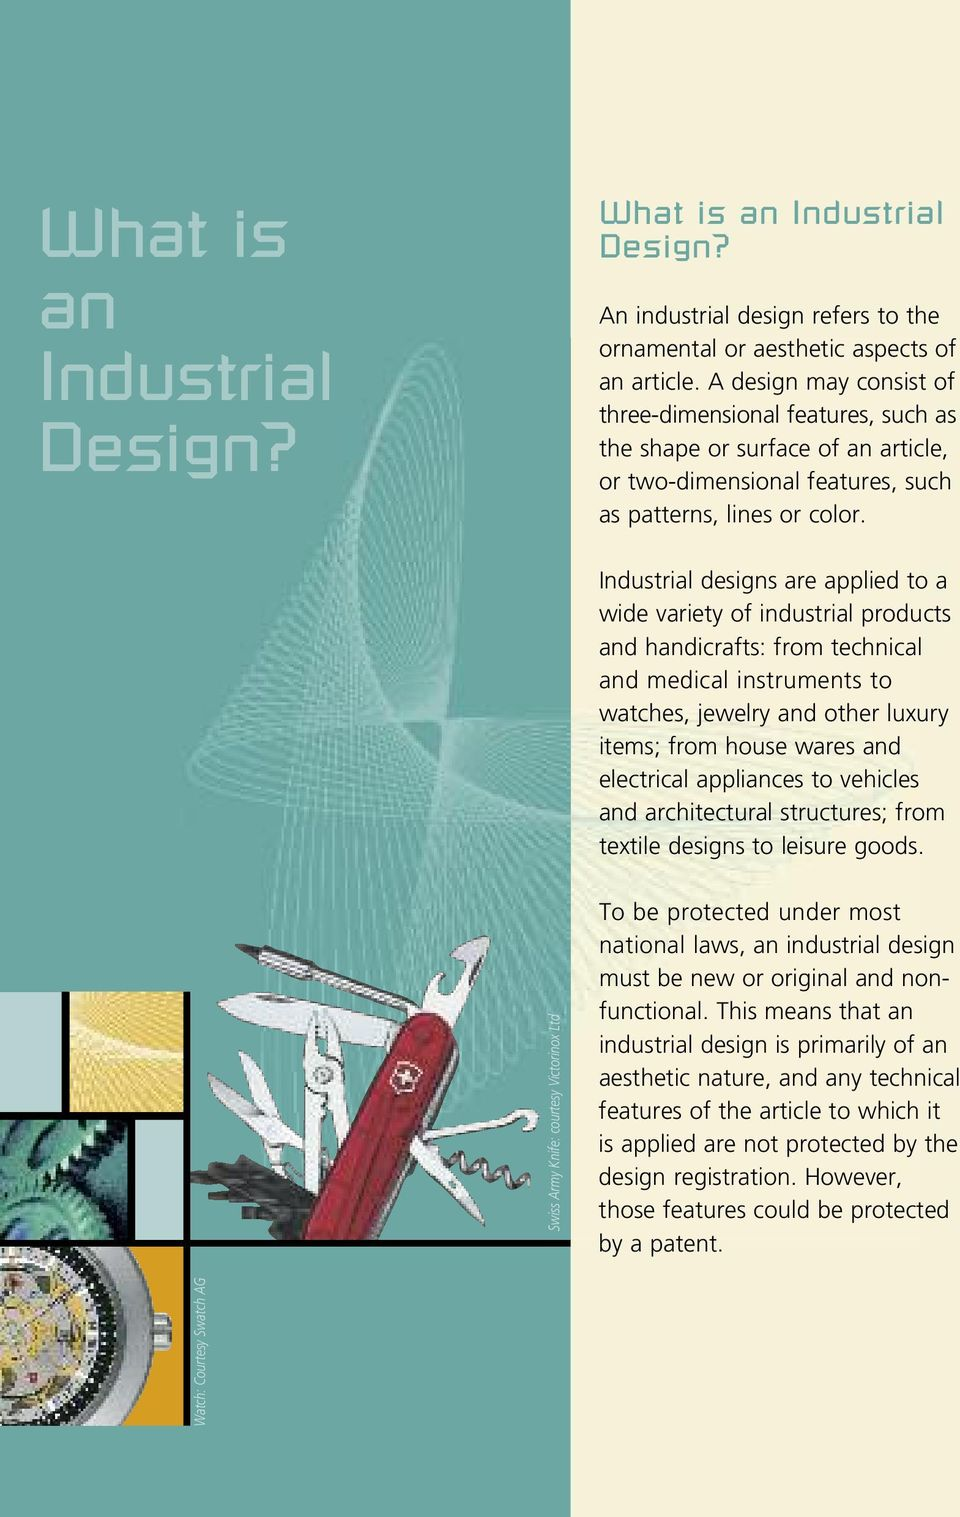 Industrial designs are applied to a wide variety of industrial products and handicrafts: from technical and medical instruments to watches, jewelry and other luxury items; from house wares and